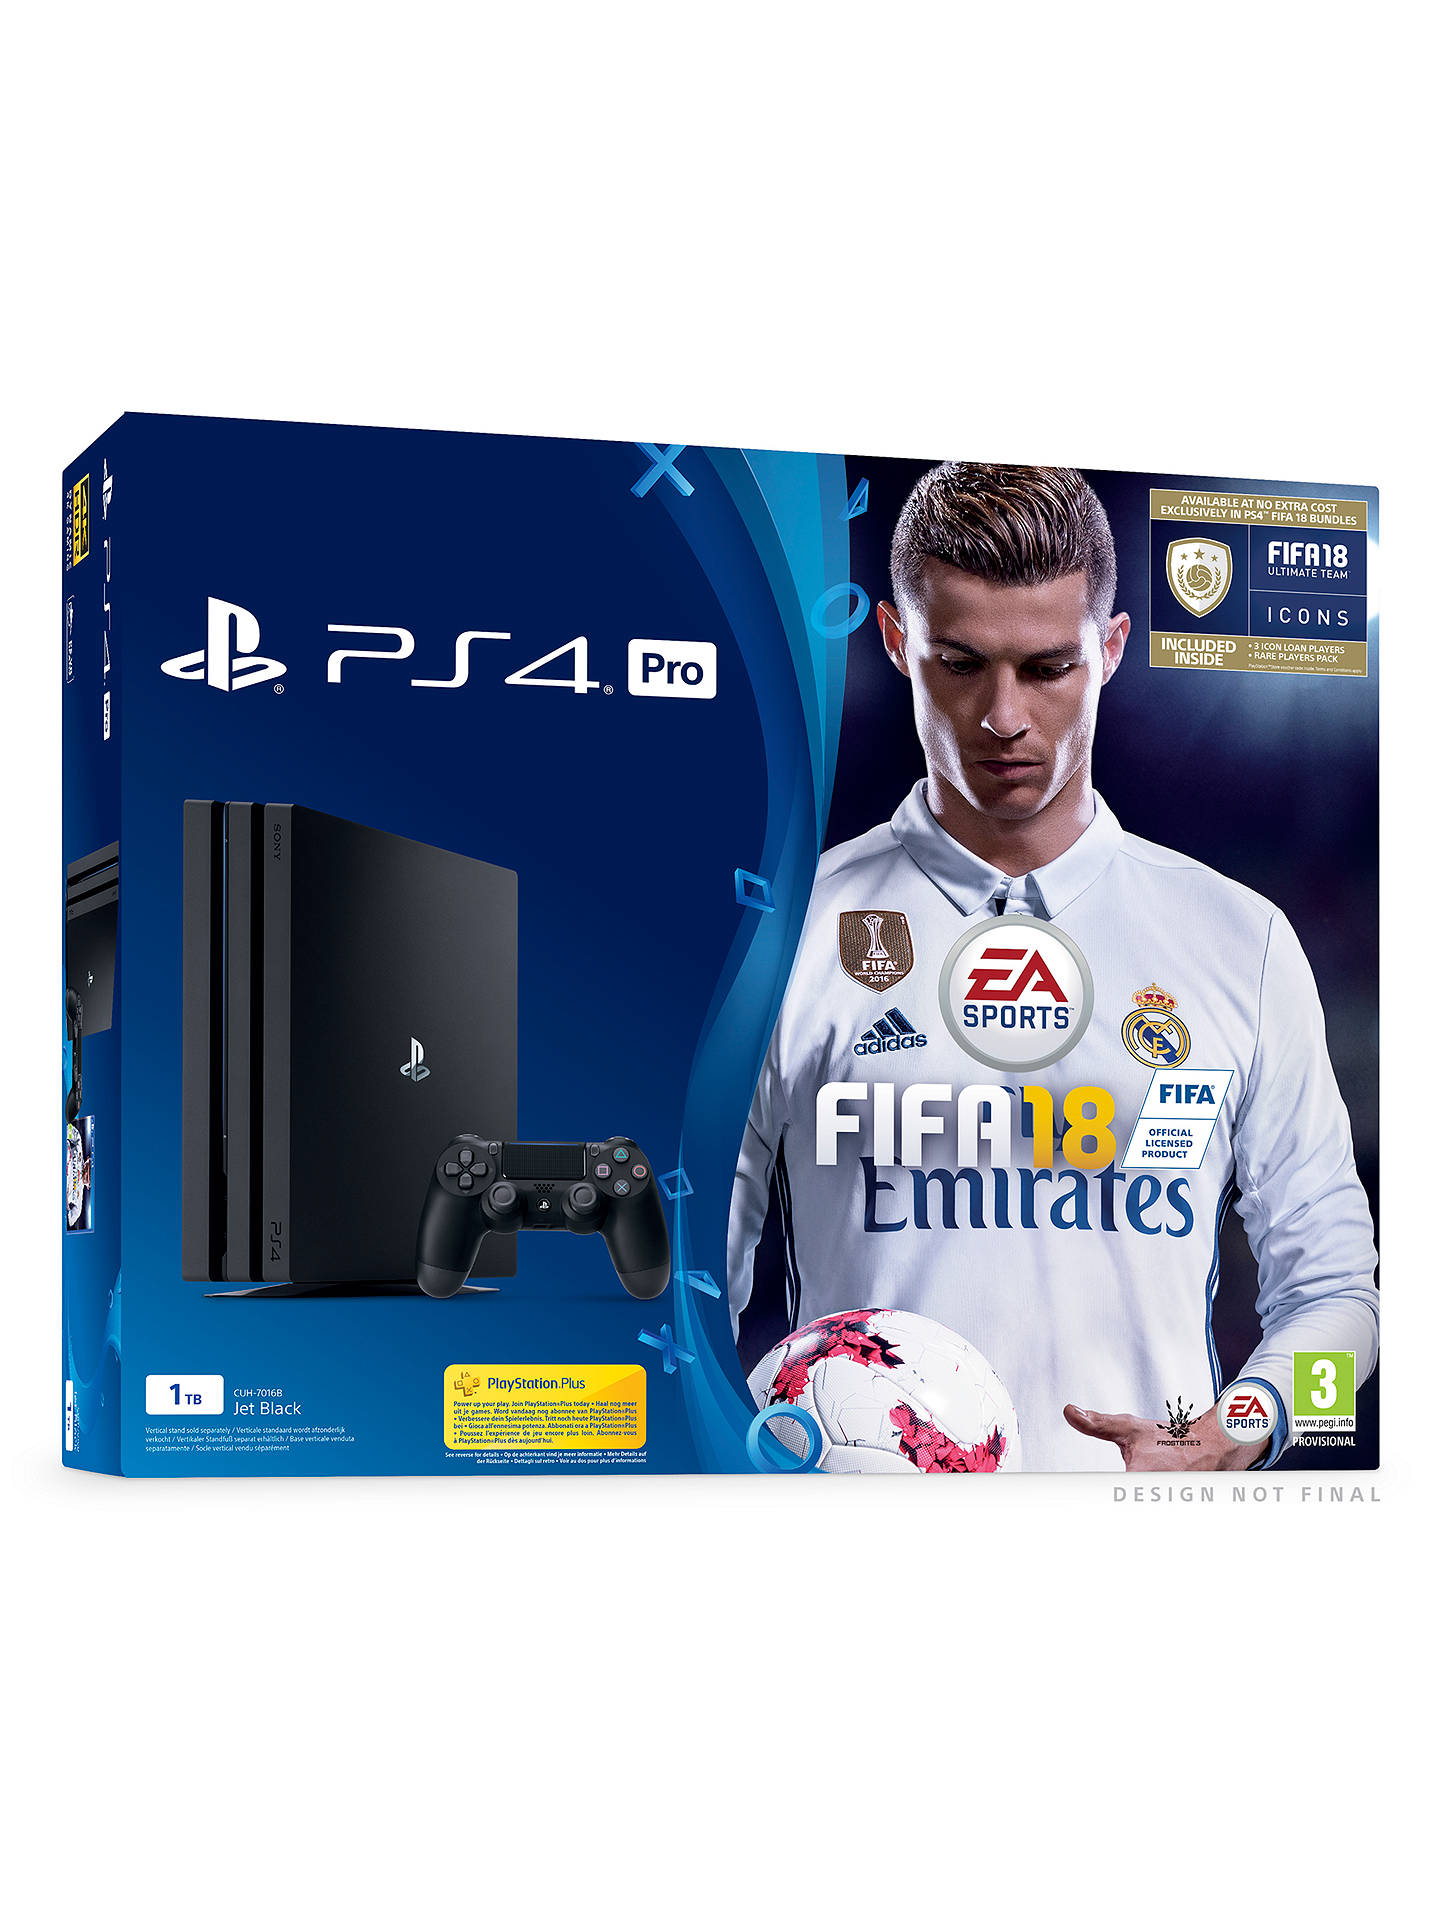 BuySony PlayStation 4 Pro Console, 1TB, Jet Black, with DualShock 4 Controller and FIFA 18 Online at johnlewis.com